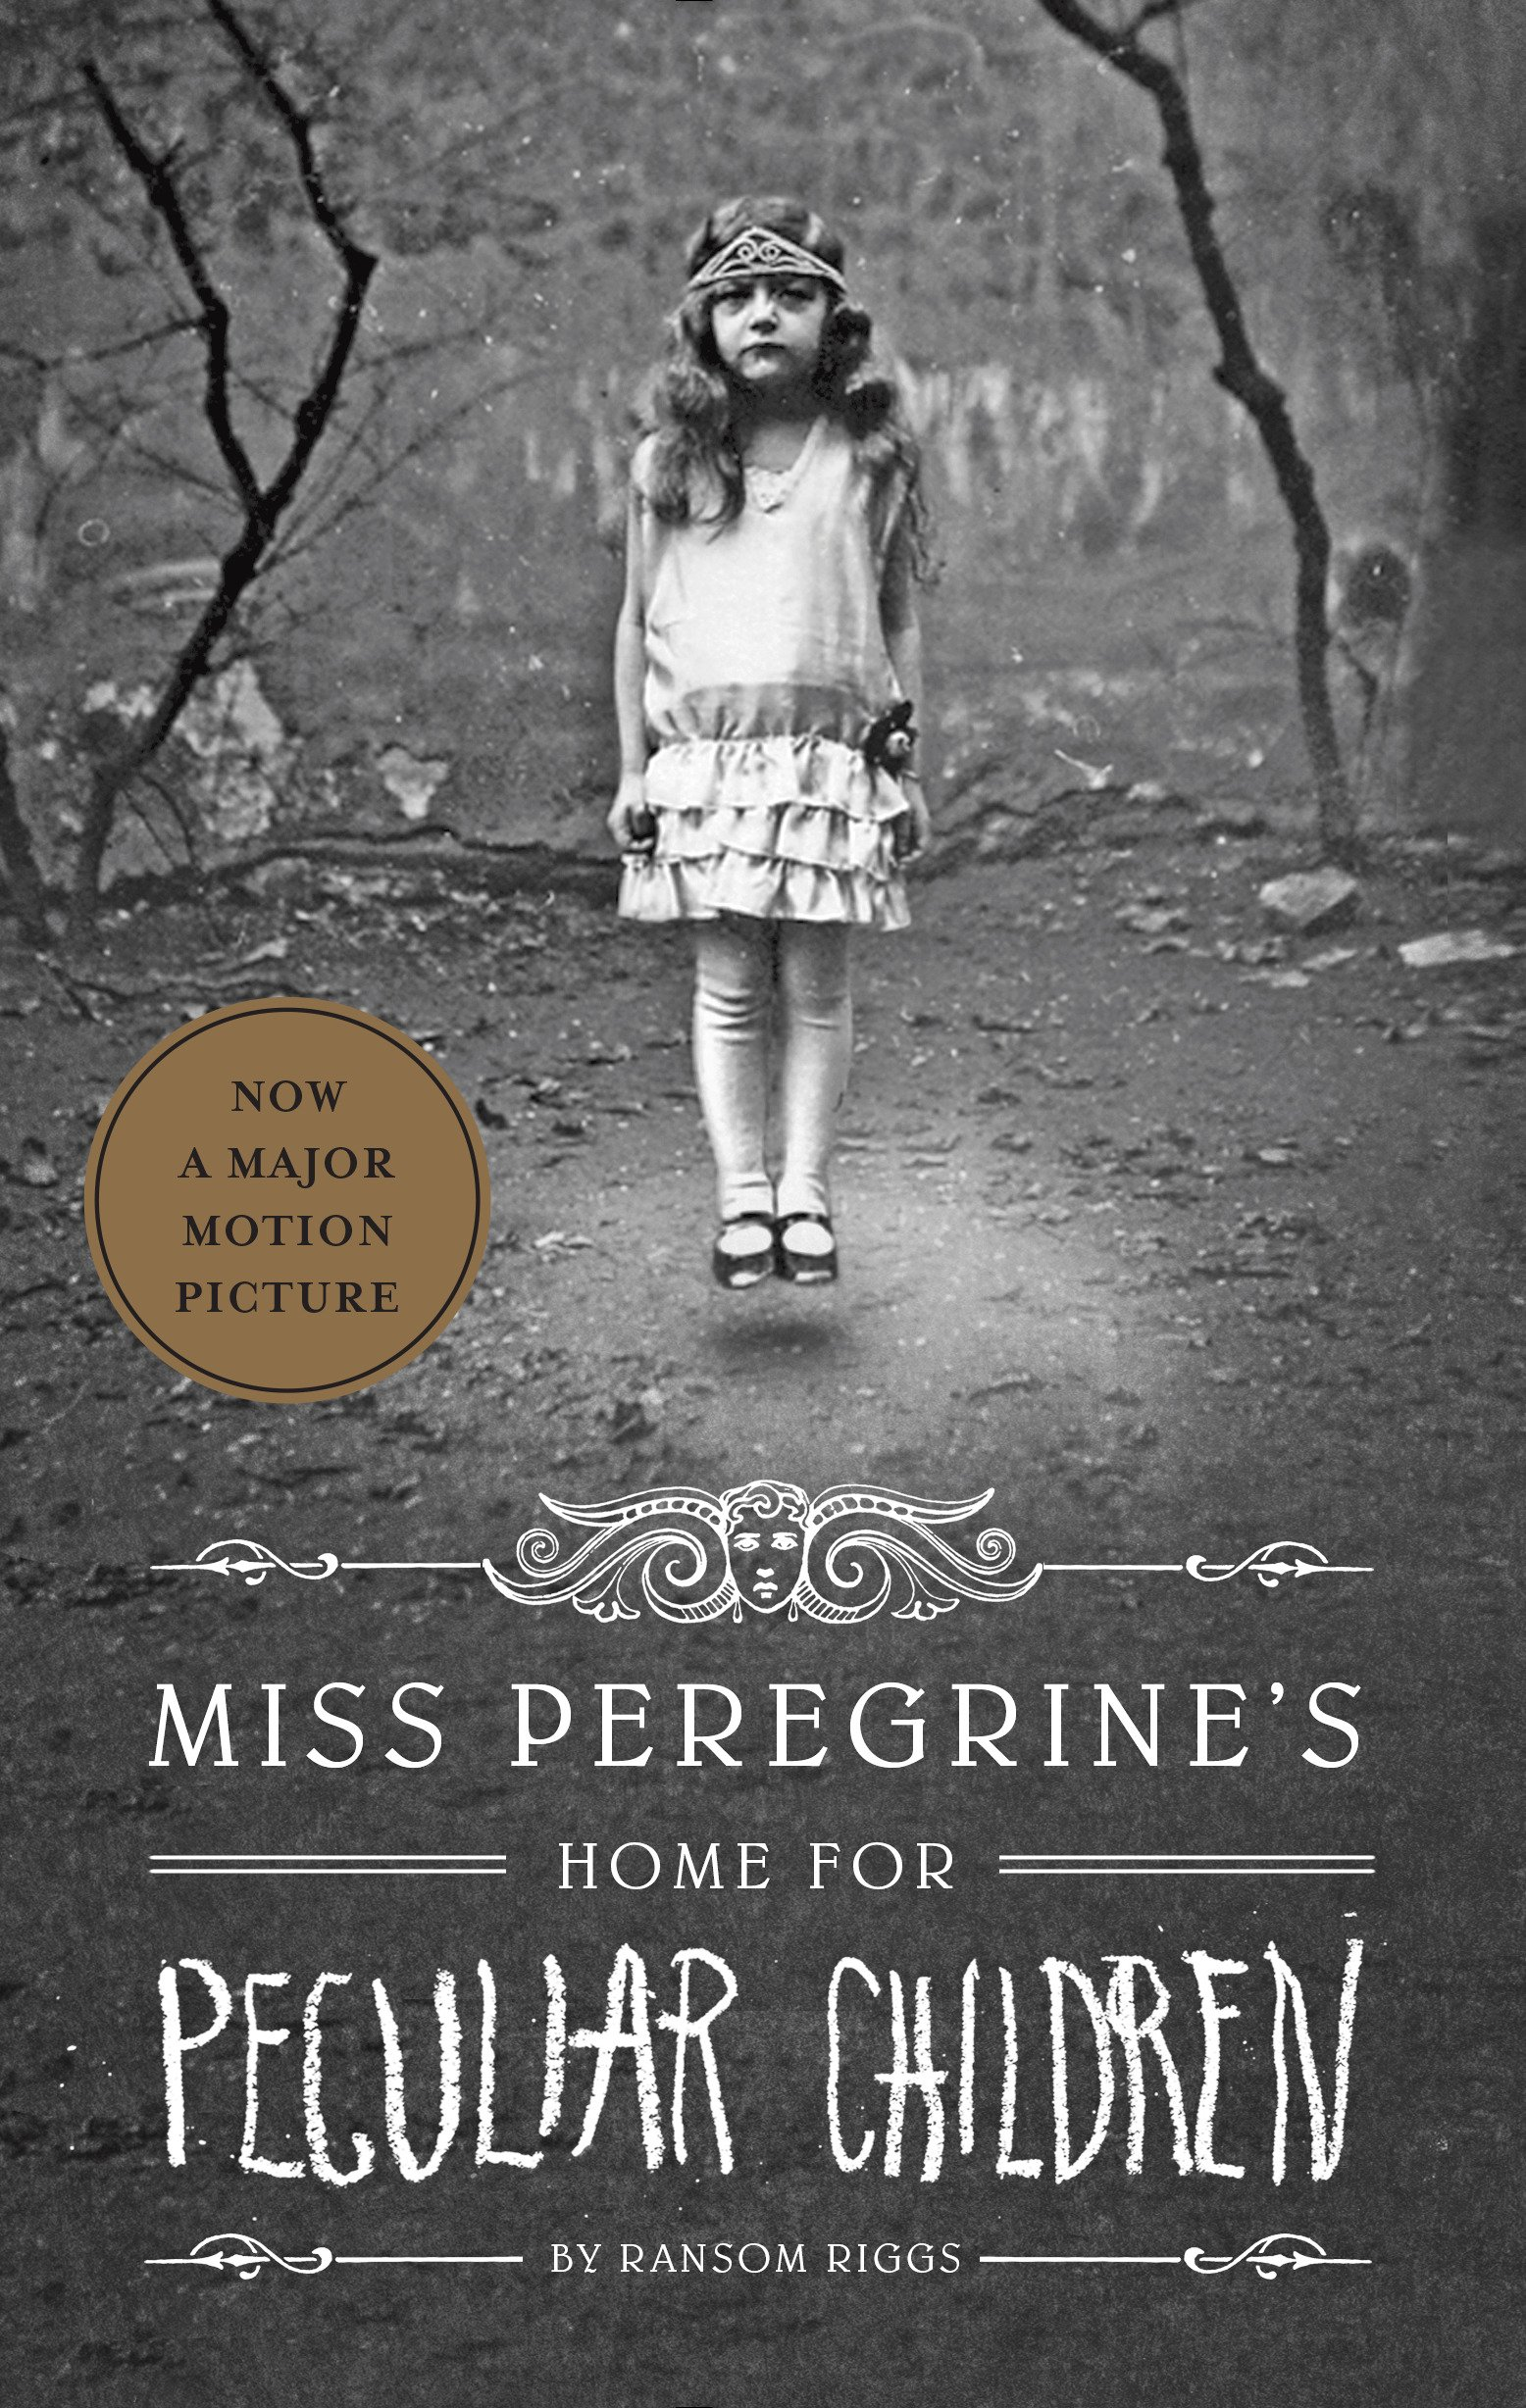 miss-peregrine-s-home-for-peculiar-children-miss-peregrine-s-peculiar-children